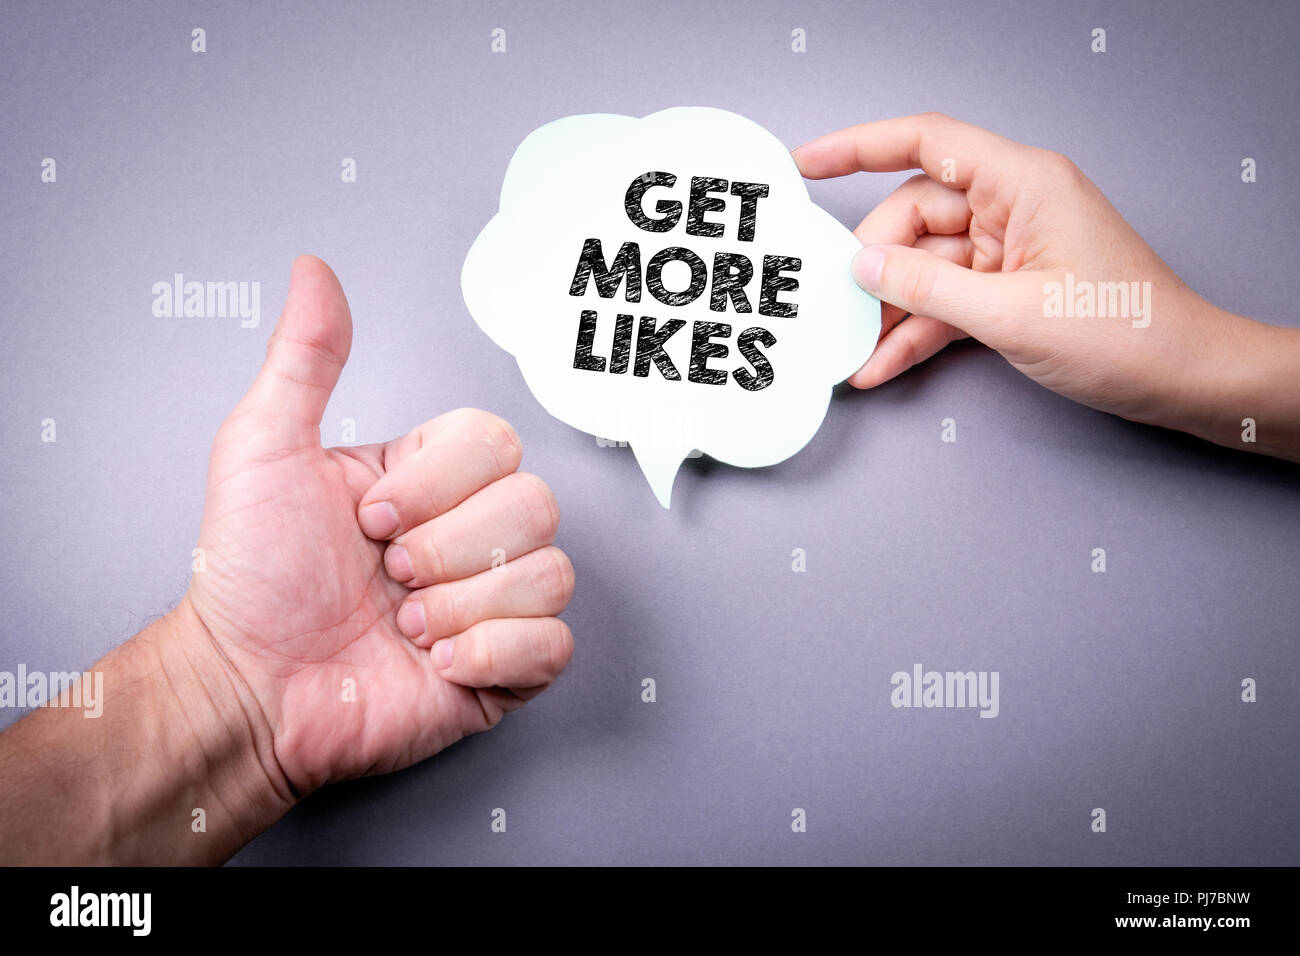 Get More Likes concept - Stock Image